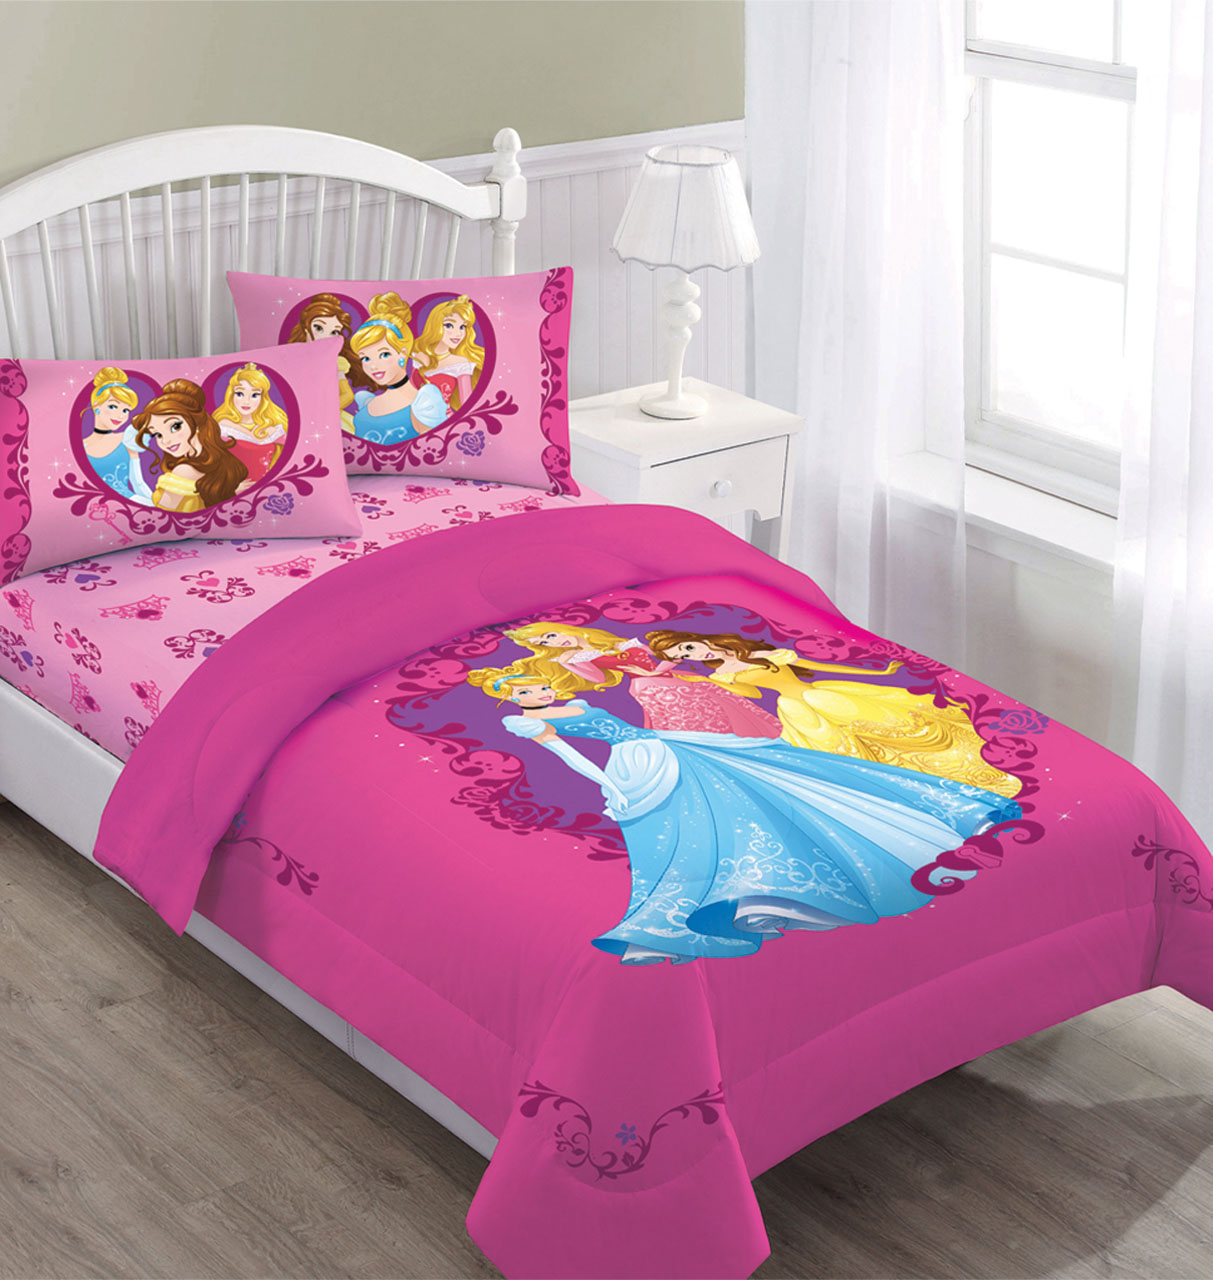 Design Princess Bedding olive kids fairy princess toddler bedding sheet set walmart com